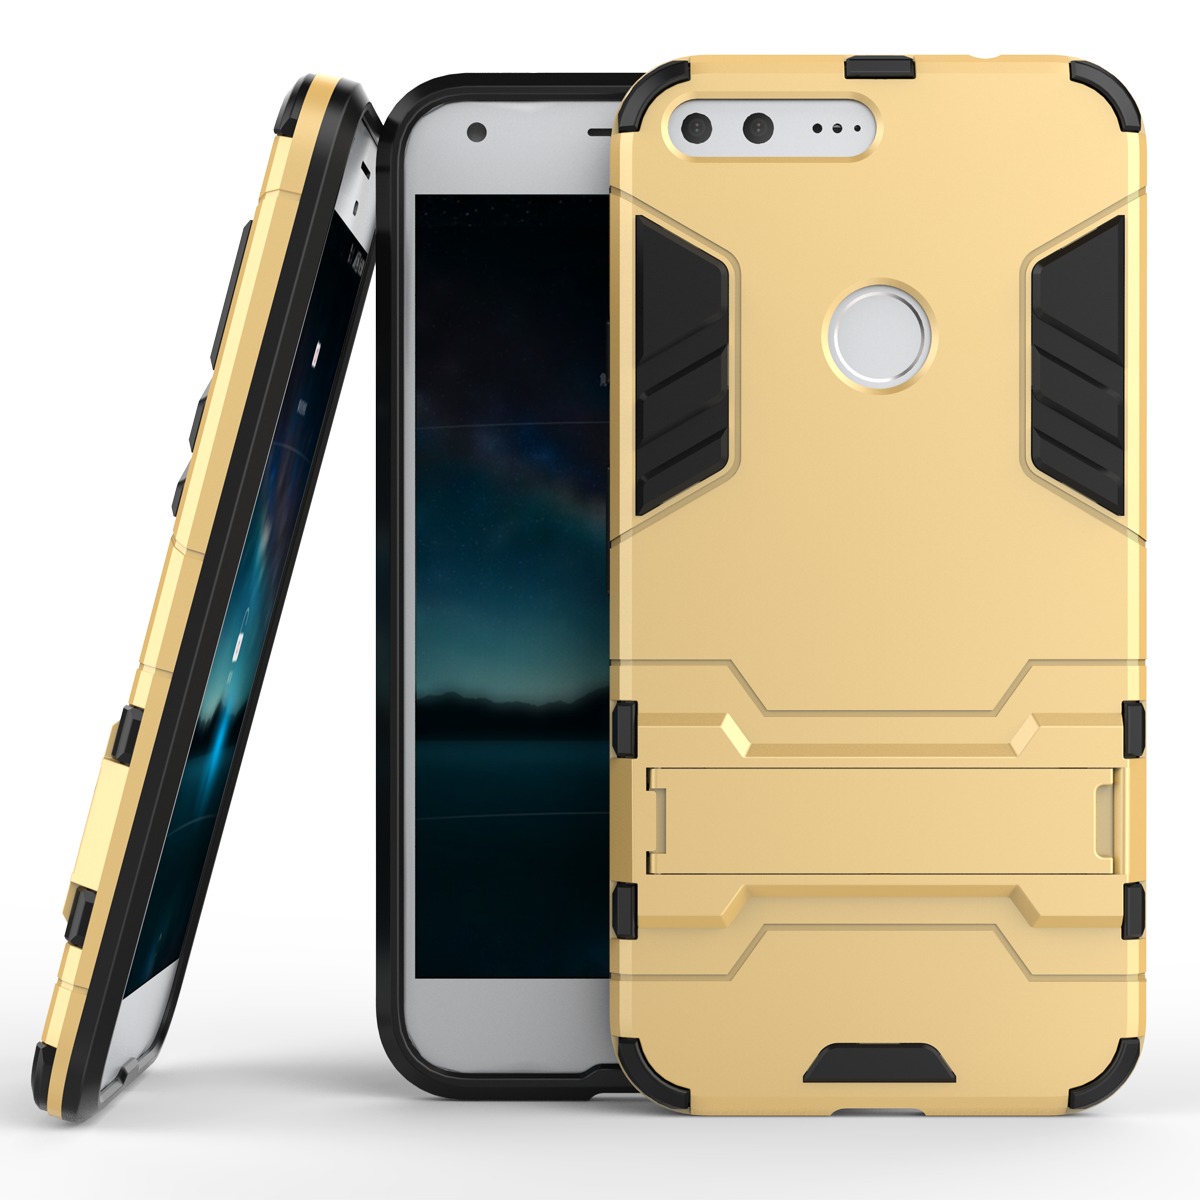 Mor defender kickstand protective cover case for google pixel xl 5 5inch gold p20161031151836957